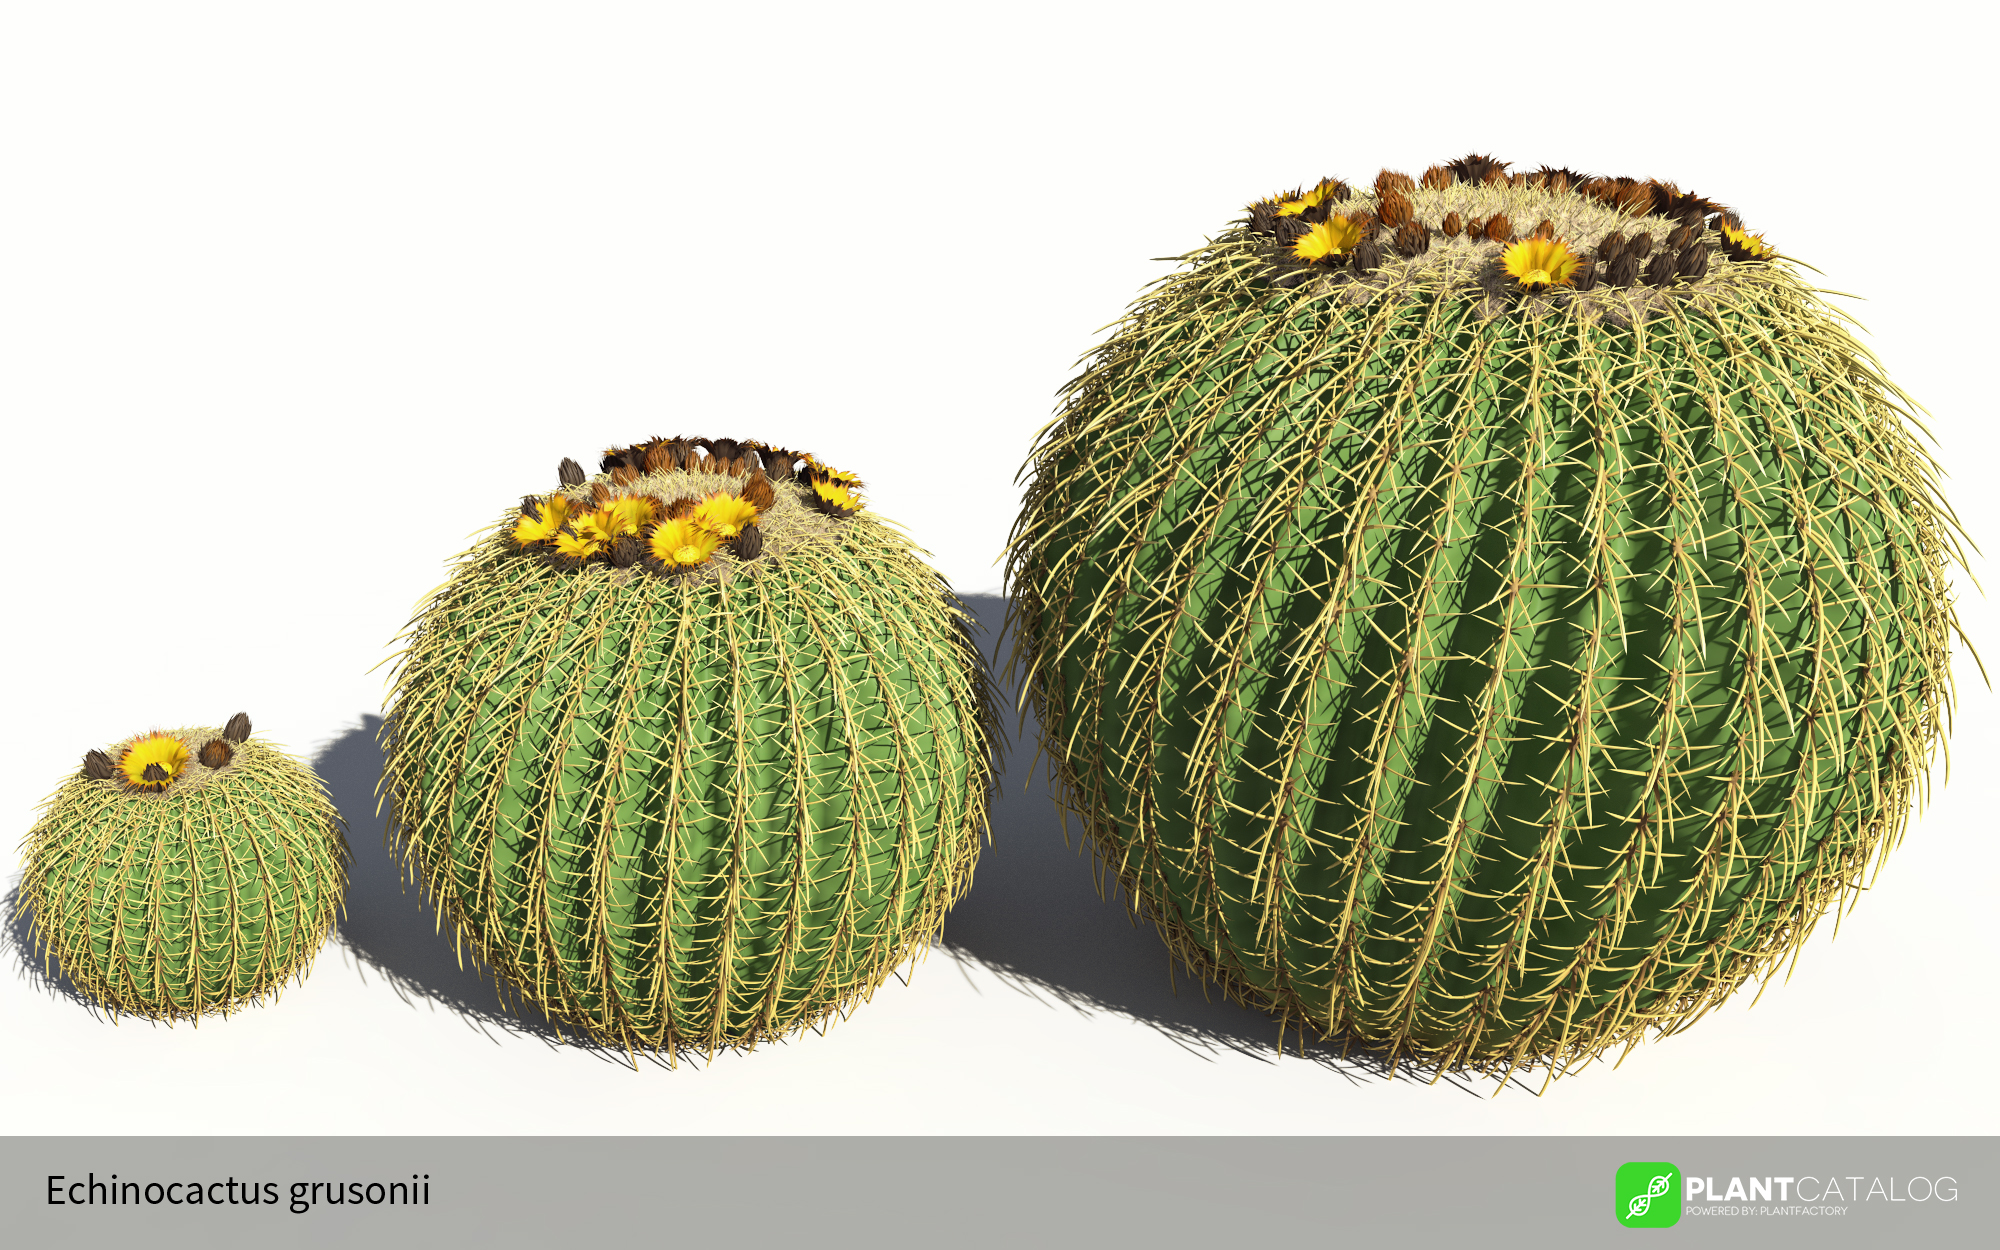 3D model of the Golden barral cactus - Echinocactus grusonii - from the PlantCatalog, rendered in VUE